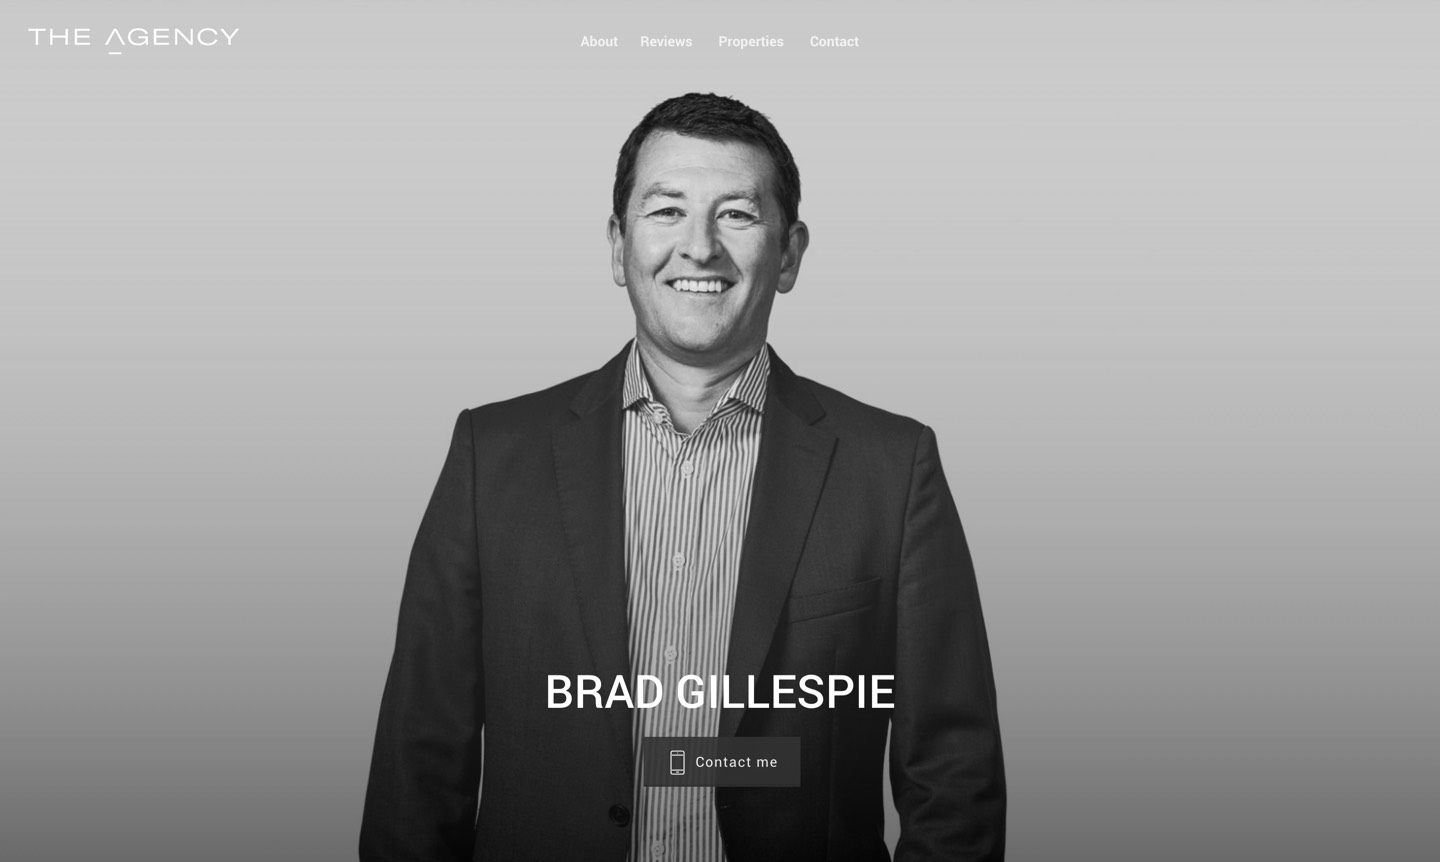 Brad Gillespie – The Agency